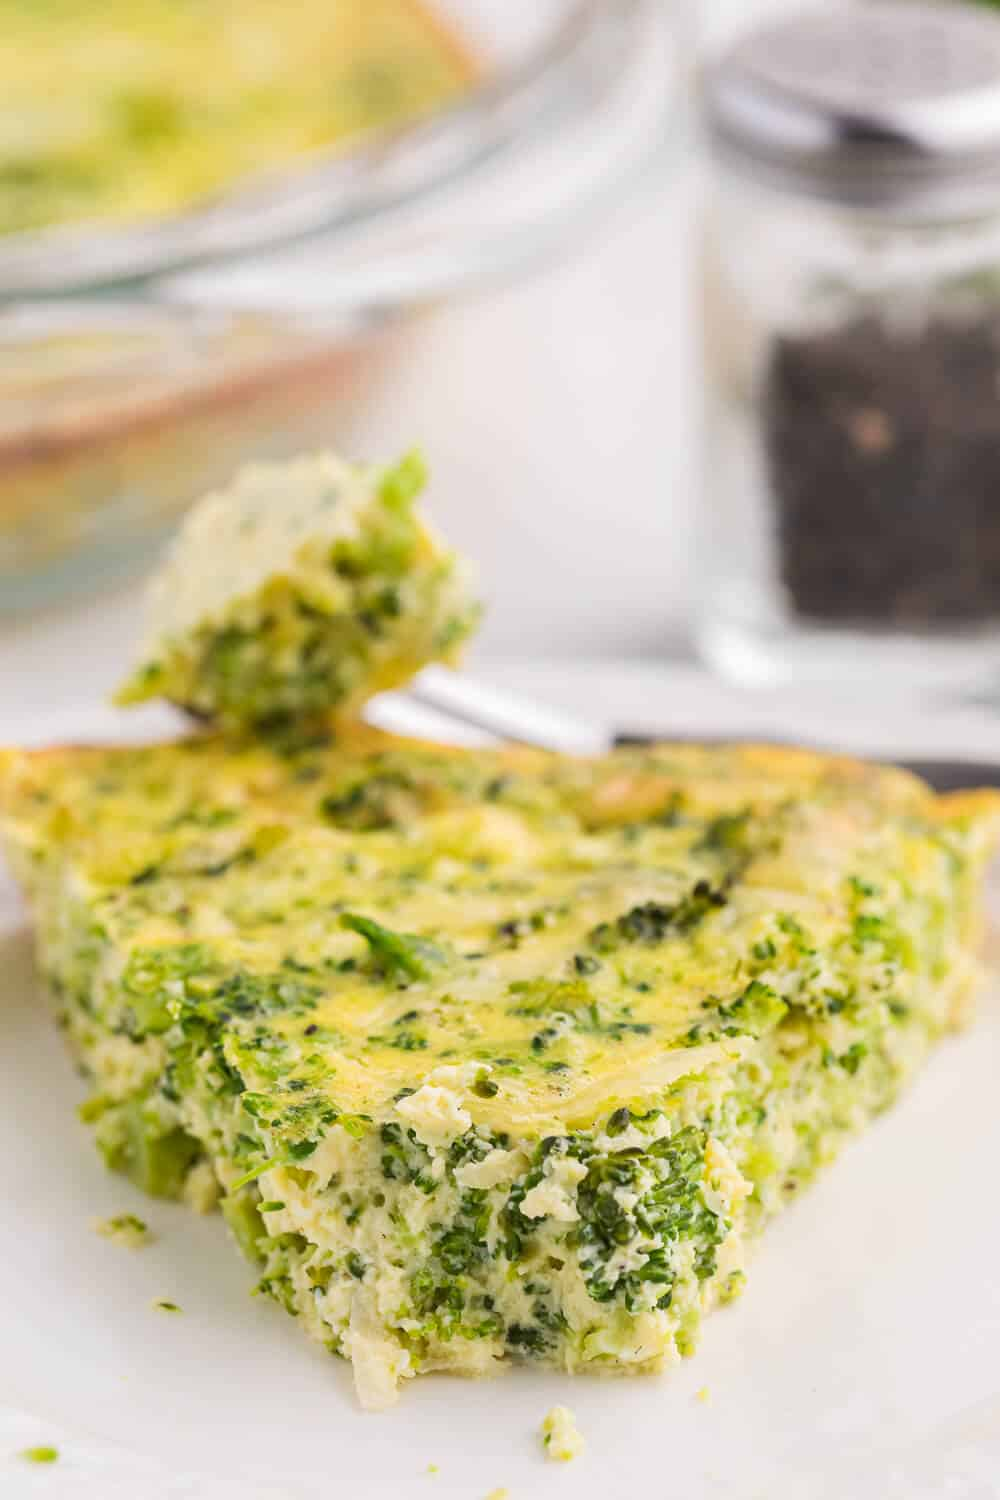 Broccoli Swamp - Don't let the name fool you - this versatile veggie-packed egg dish is delicious! Using fresh or frozen broccoli, along with eggs, Swiss cheese and a subtle garlic flavour, the whole family will love this dish!